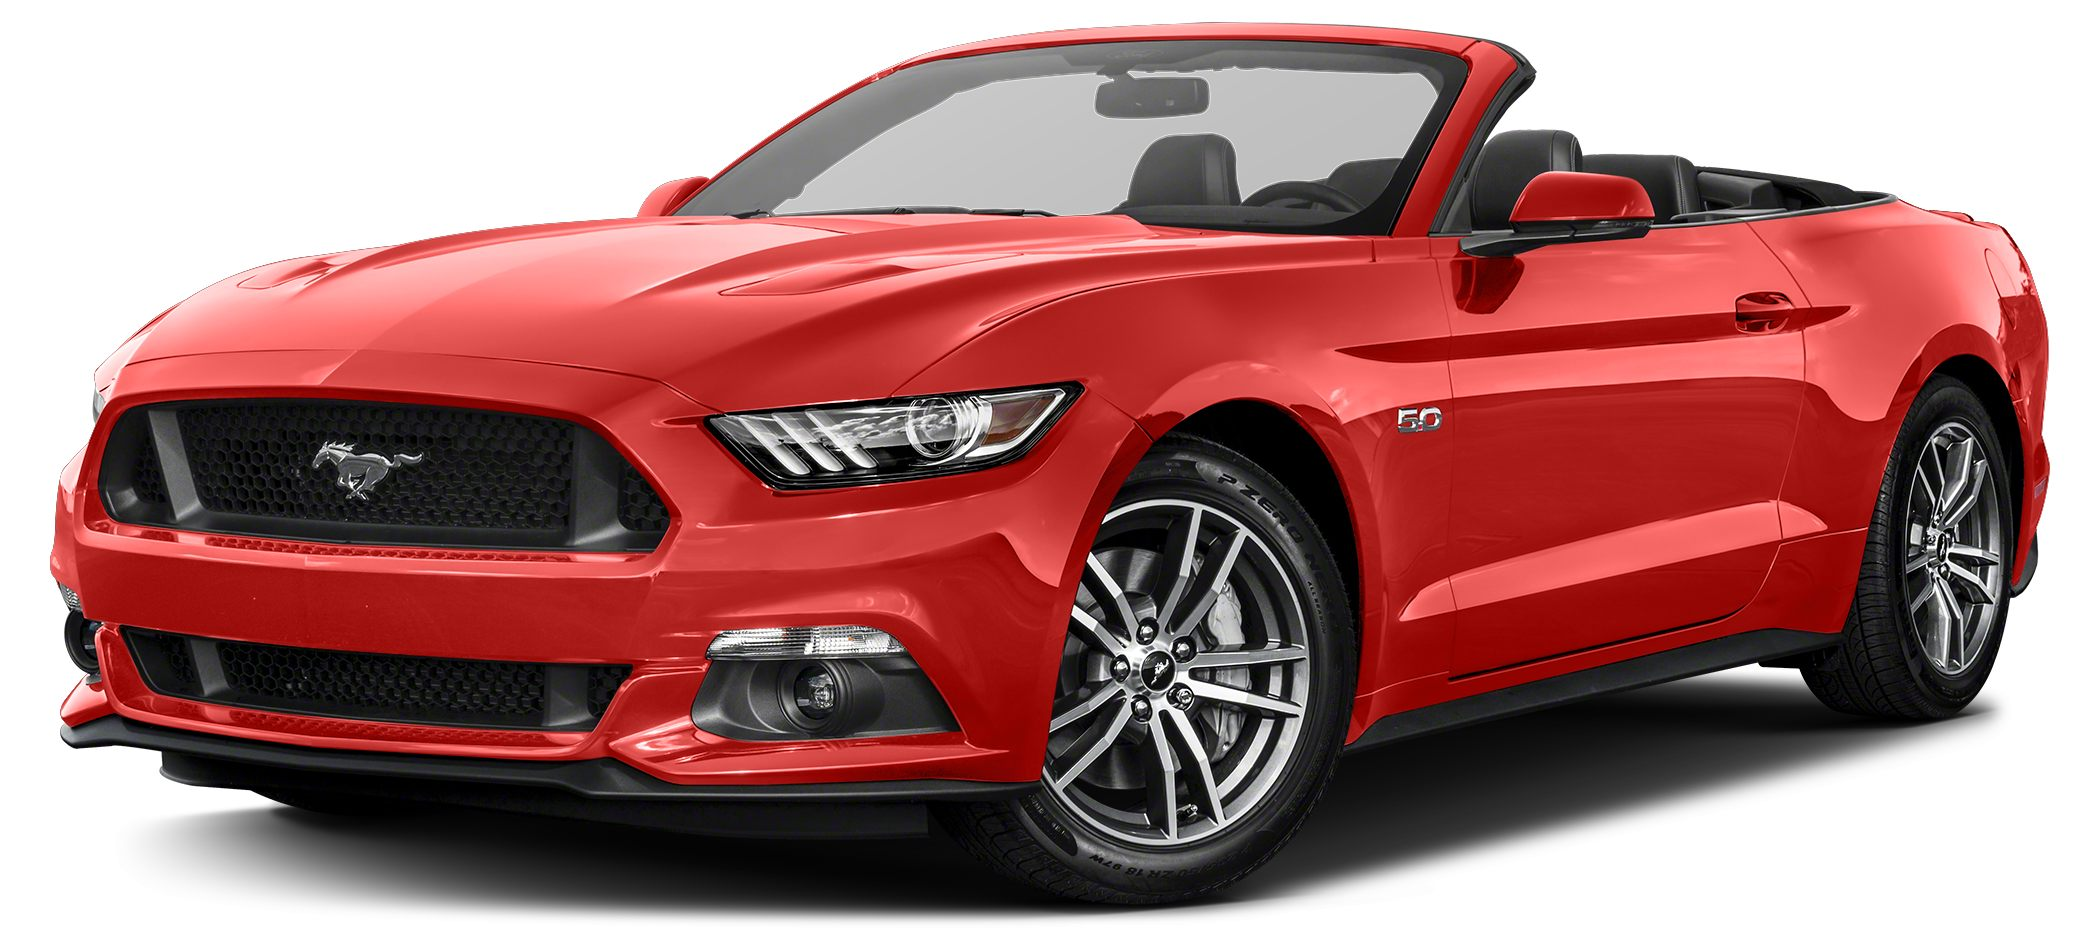 2015 Ford Mustang GT Premium Miles 714Color Competition Orange Stock 9329M VIN 1FATP8FF3F534